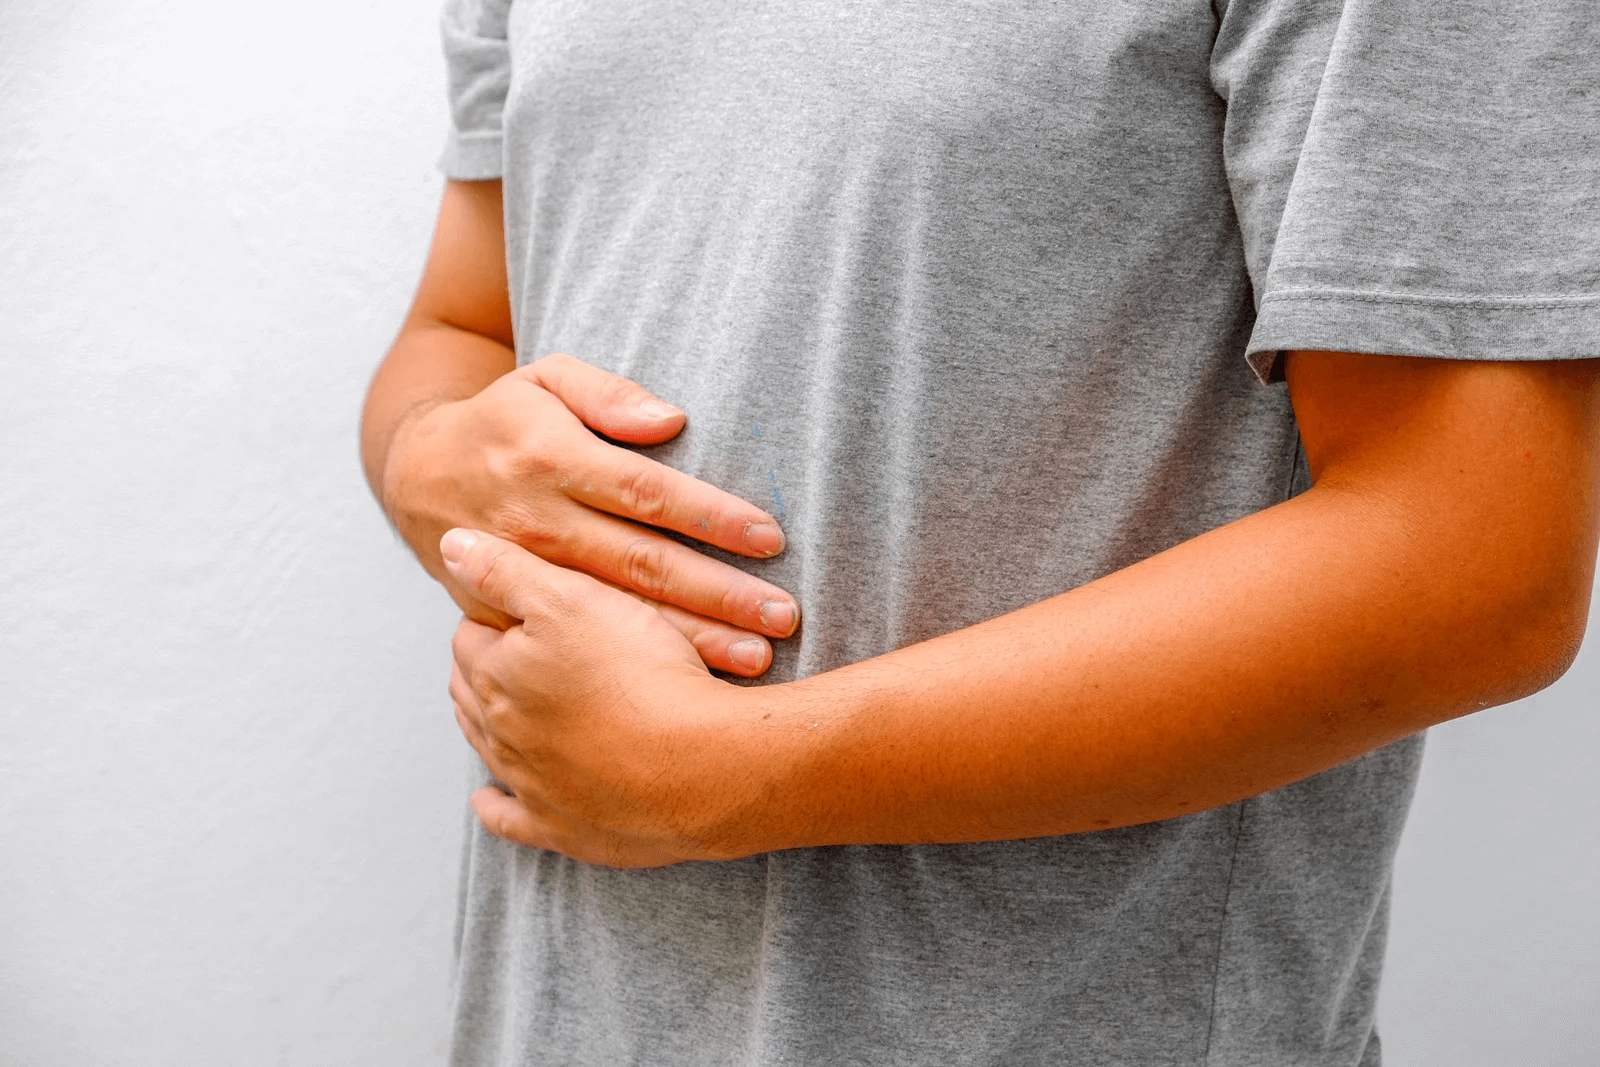 person holding stomach in pain due to gastrointestinal nutrition issues